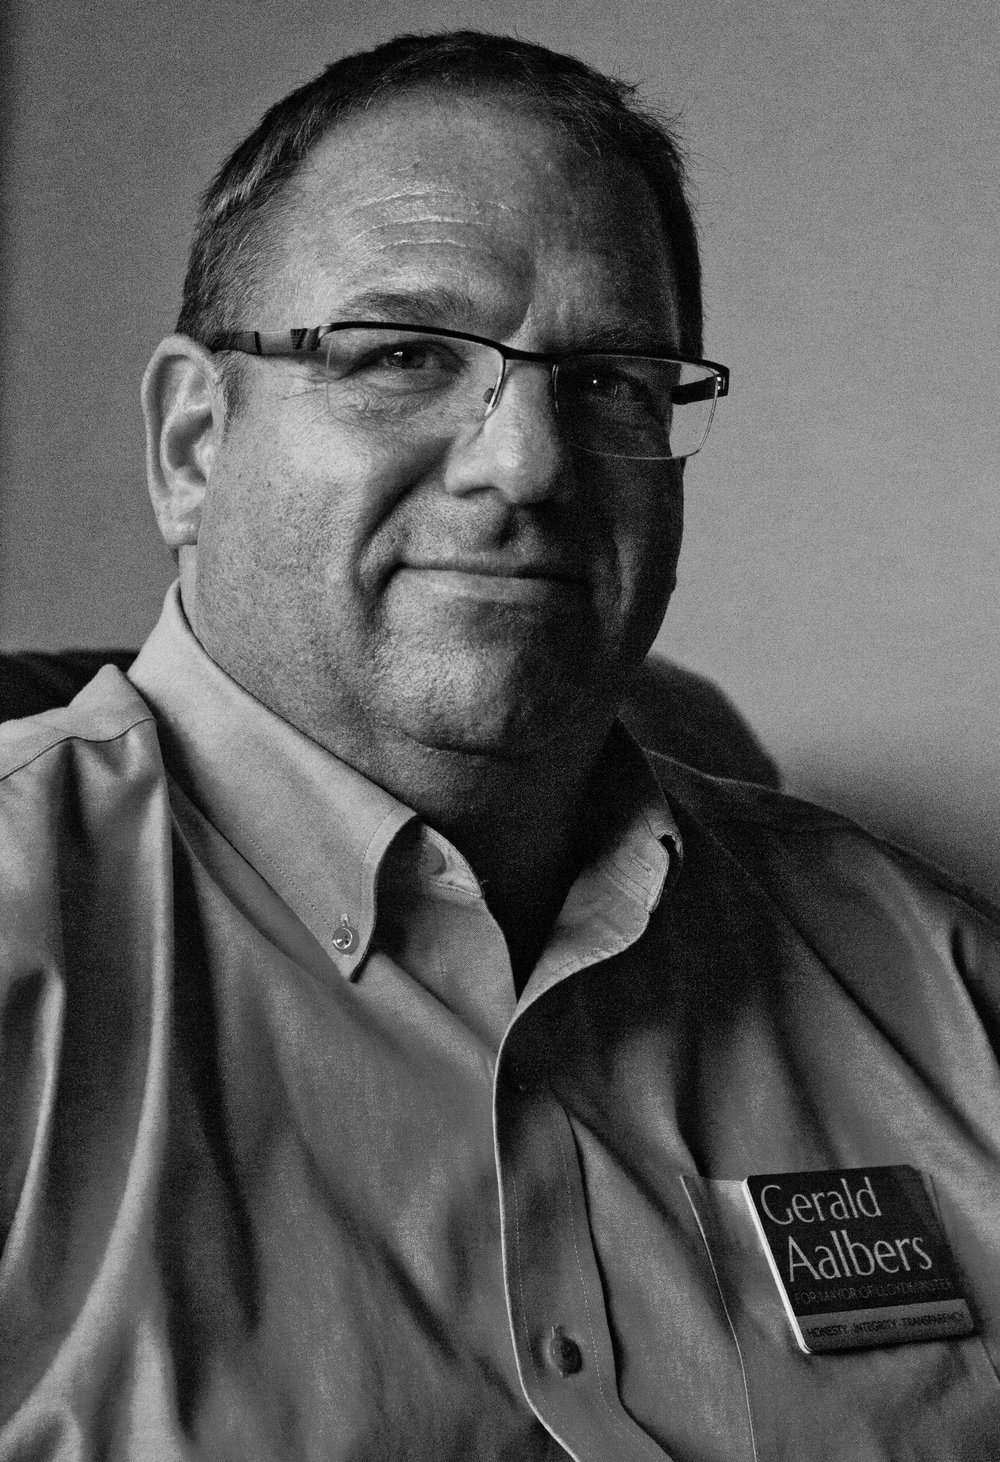 The last mayoral candidate of the three was Gerald Aalbers. Aalbers came into the race after taking issue with the way the city government handled the disclosure of a contract signed it signed with former mayor Jeff Mulligan. Prior to the municipal election, he had worked as an organizer for the Lloydminster Heavy Oil Show.